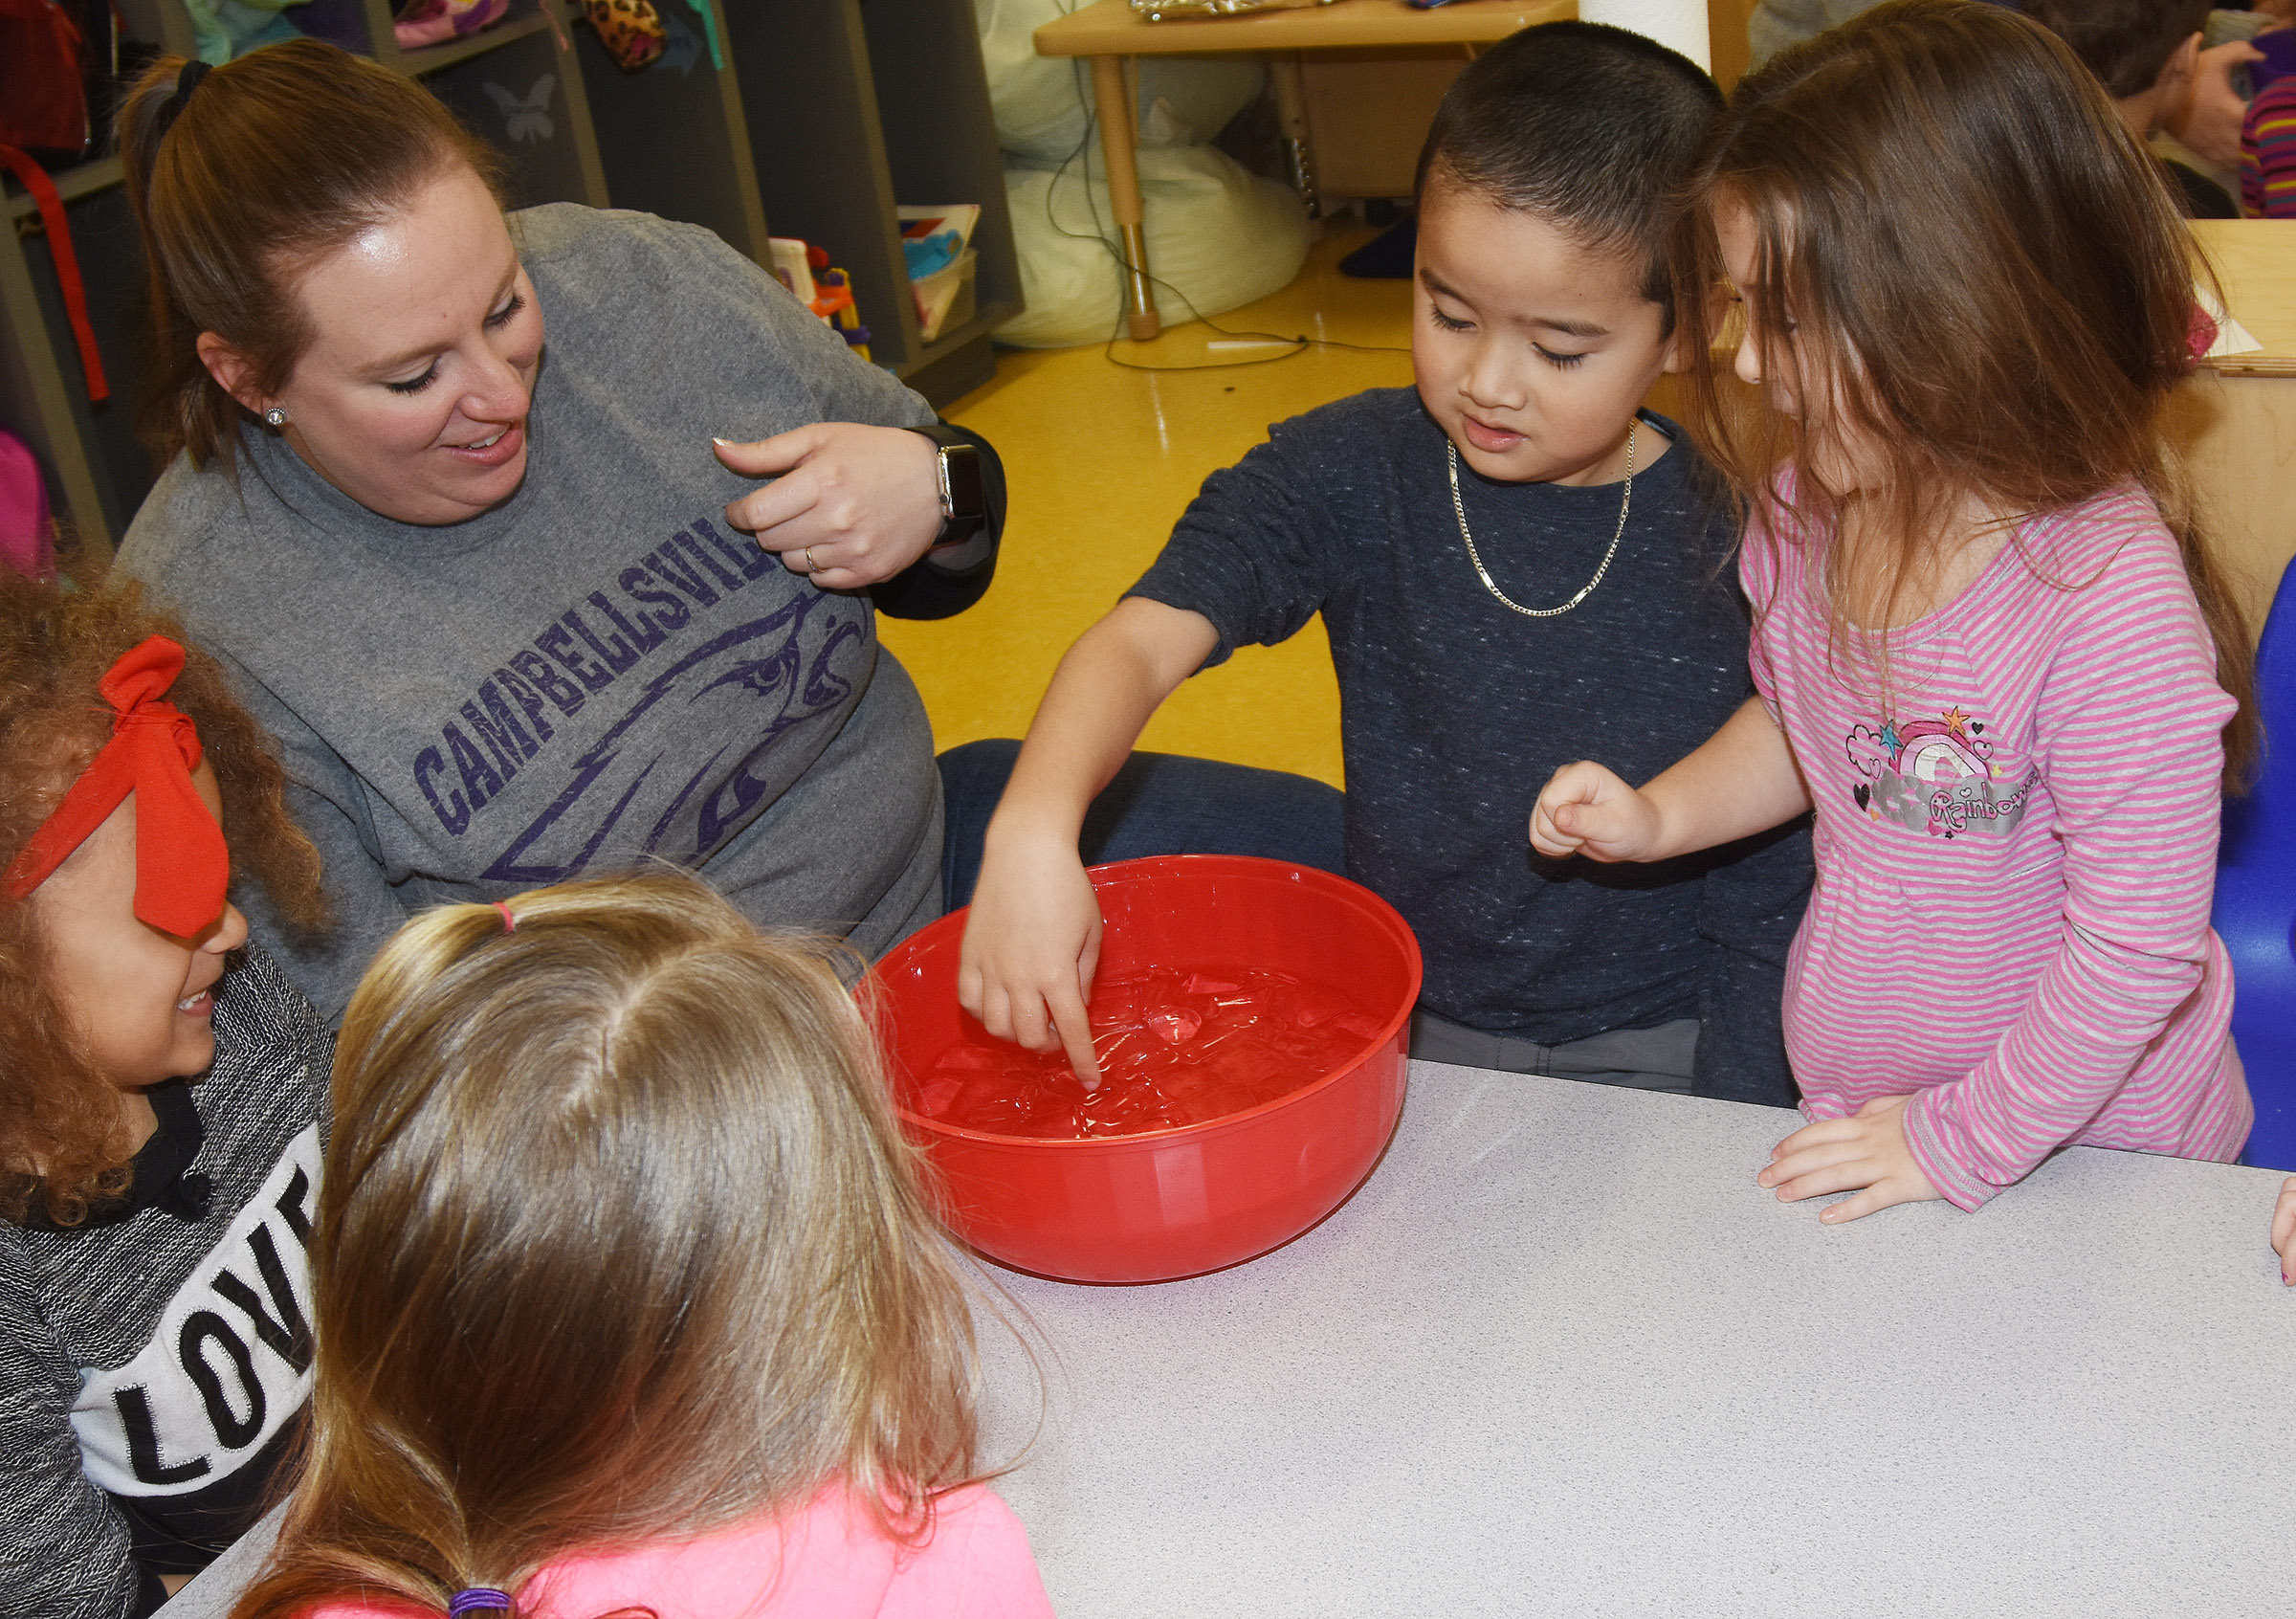 CES preschool student Minh Turdo places his hand inside ice water to see how cold it is, as his classmates and teacher Julie Shelton watch.